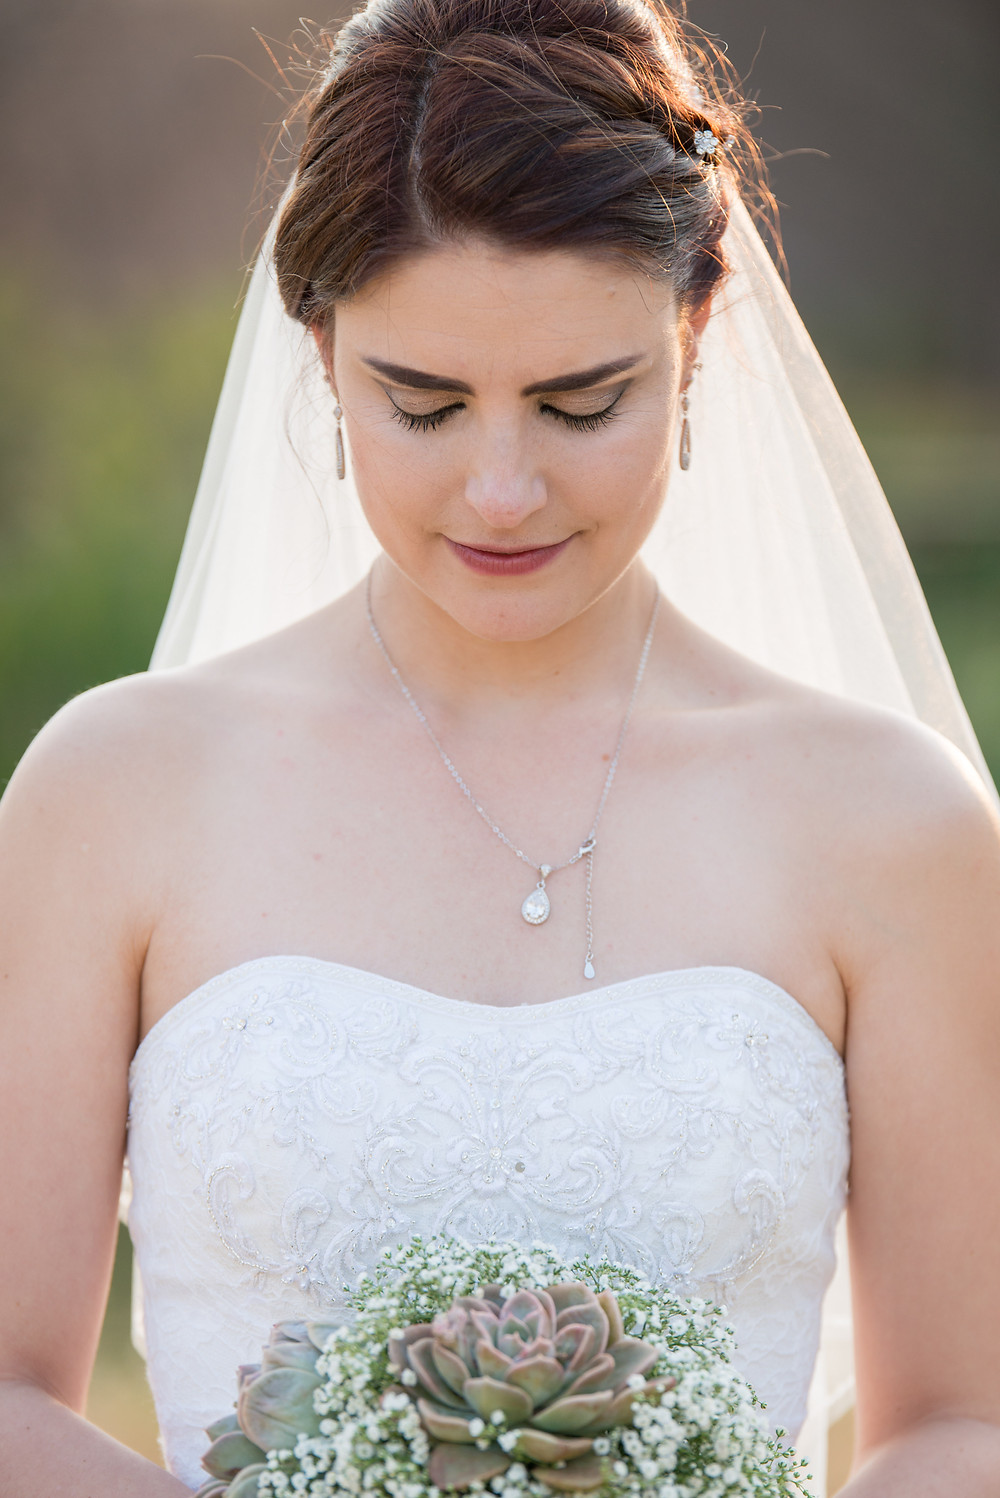 wedding photography by RICH Photography